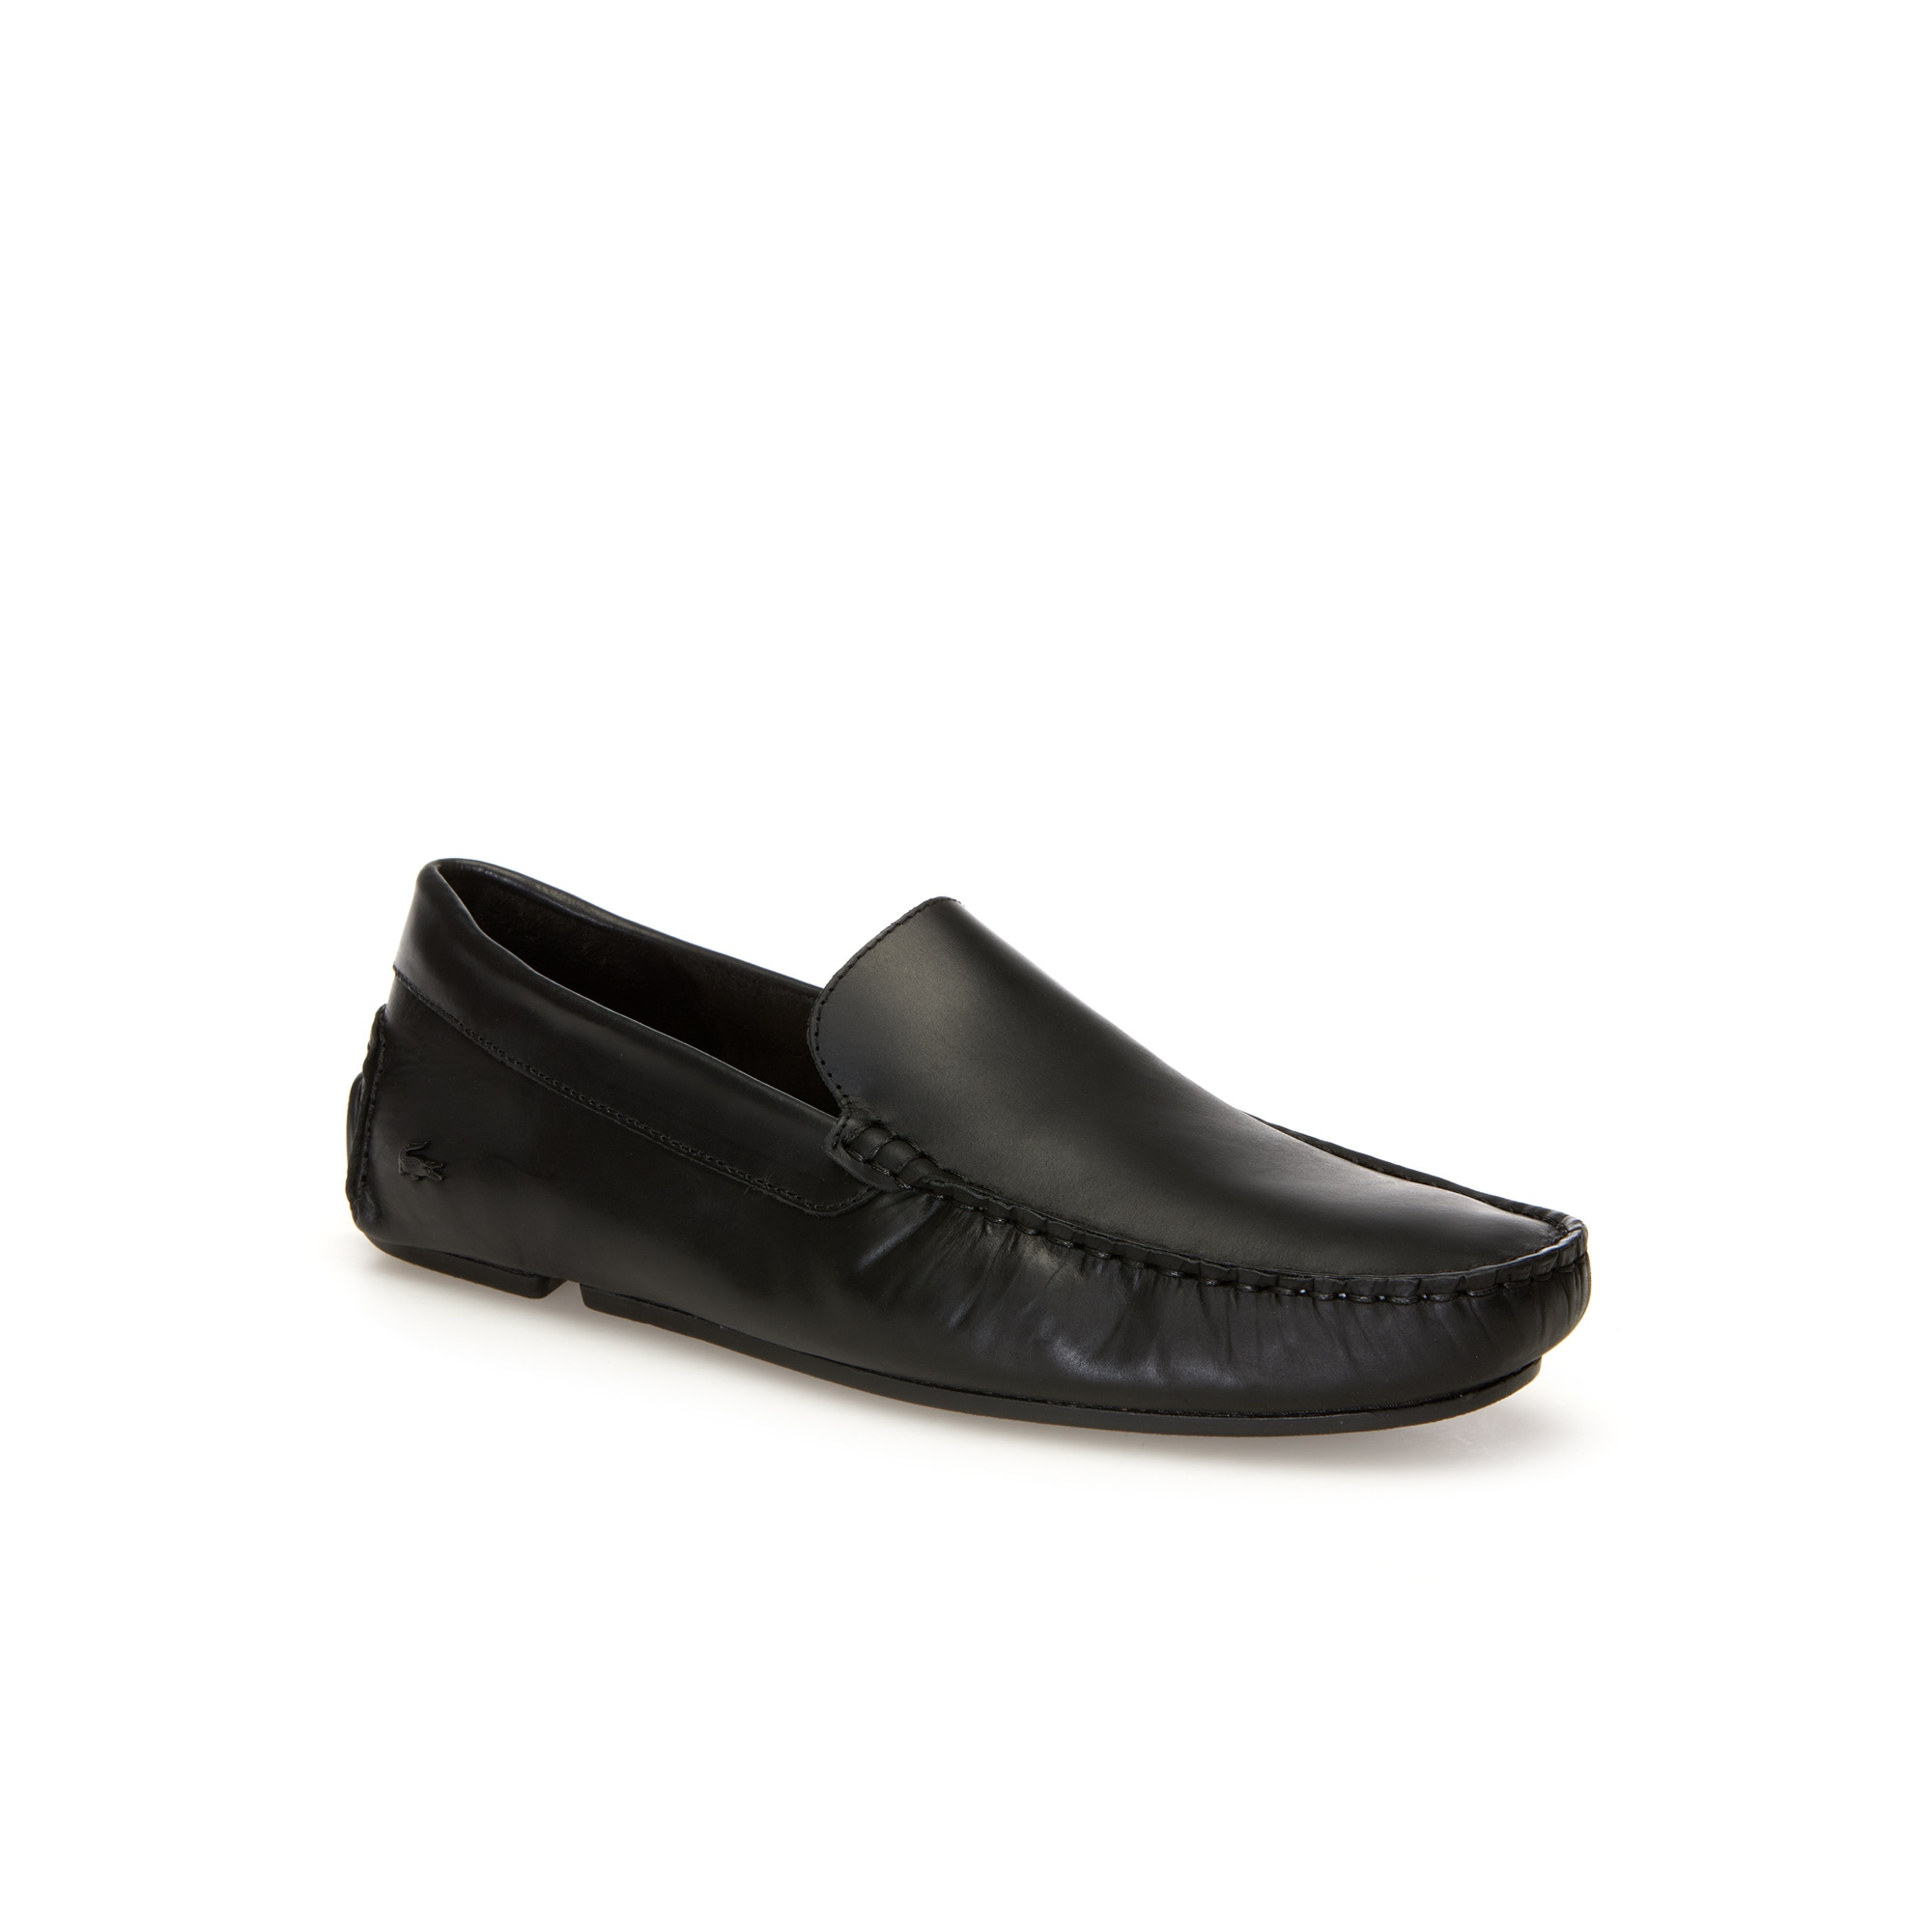 Lacoste Shoes Mens India